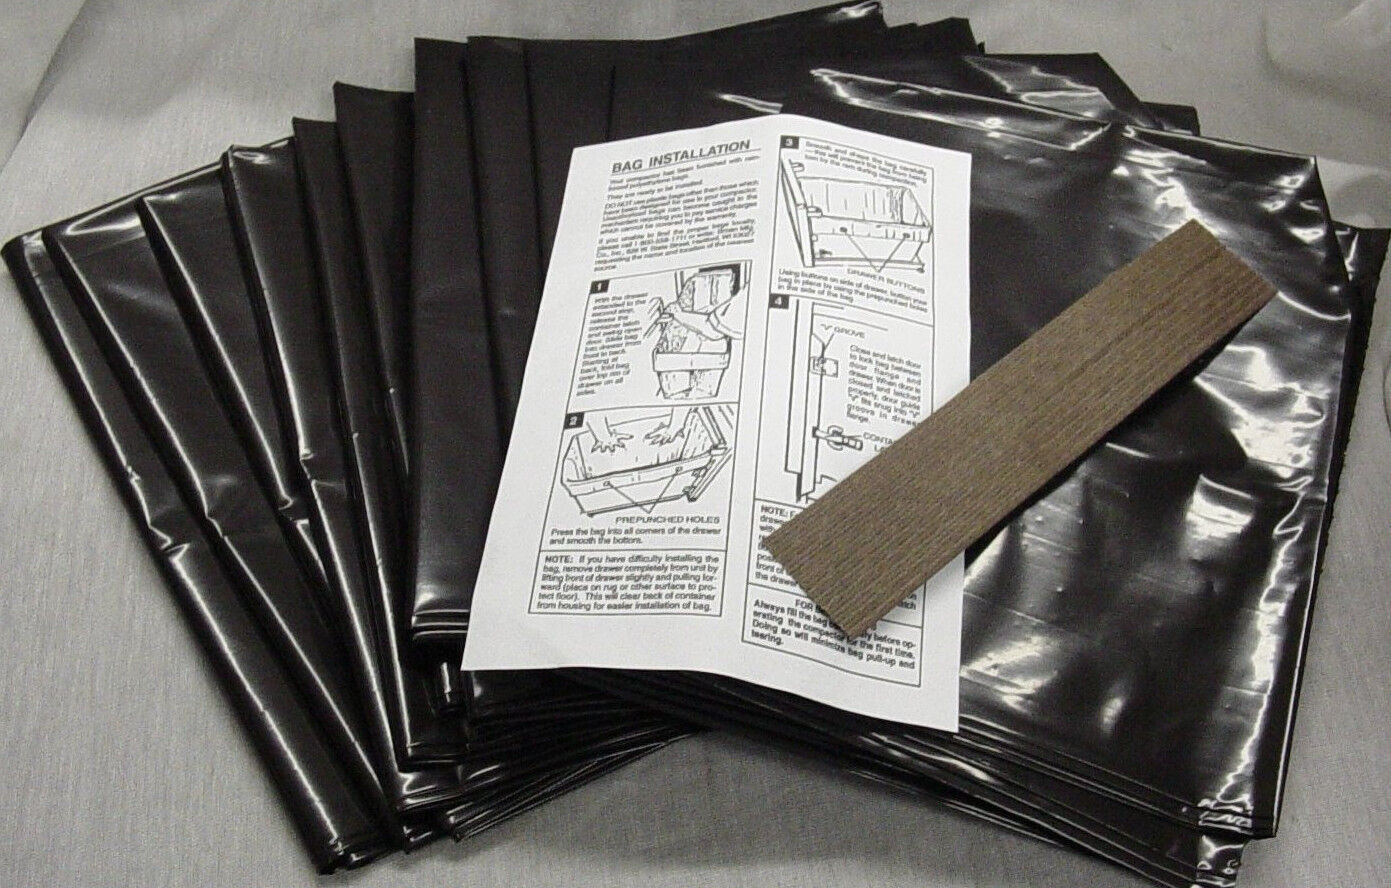 NEW 144 Pack Broan 12 Inch Plastic Trash Compactor Bags